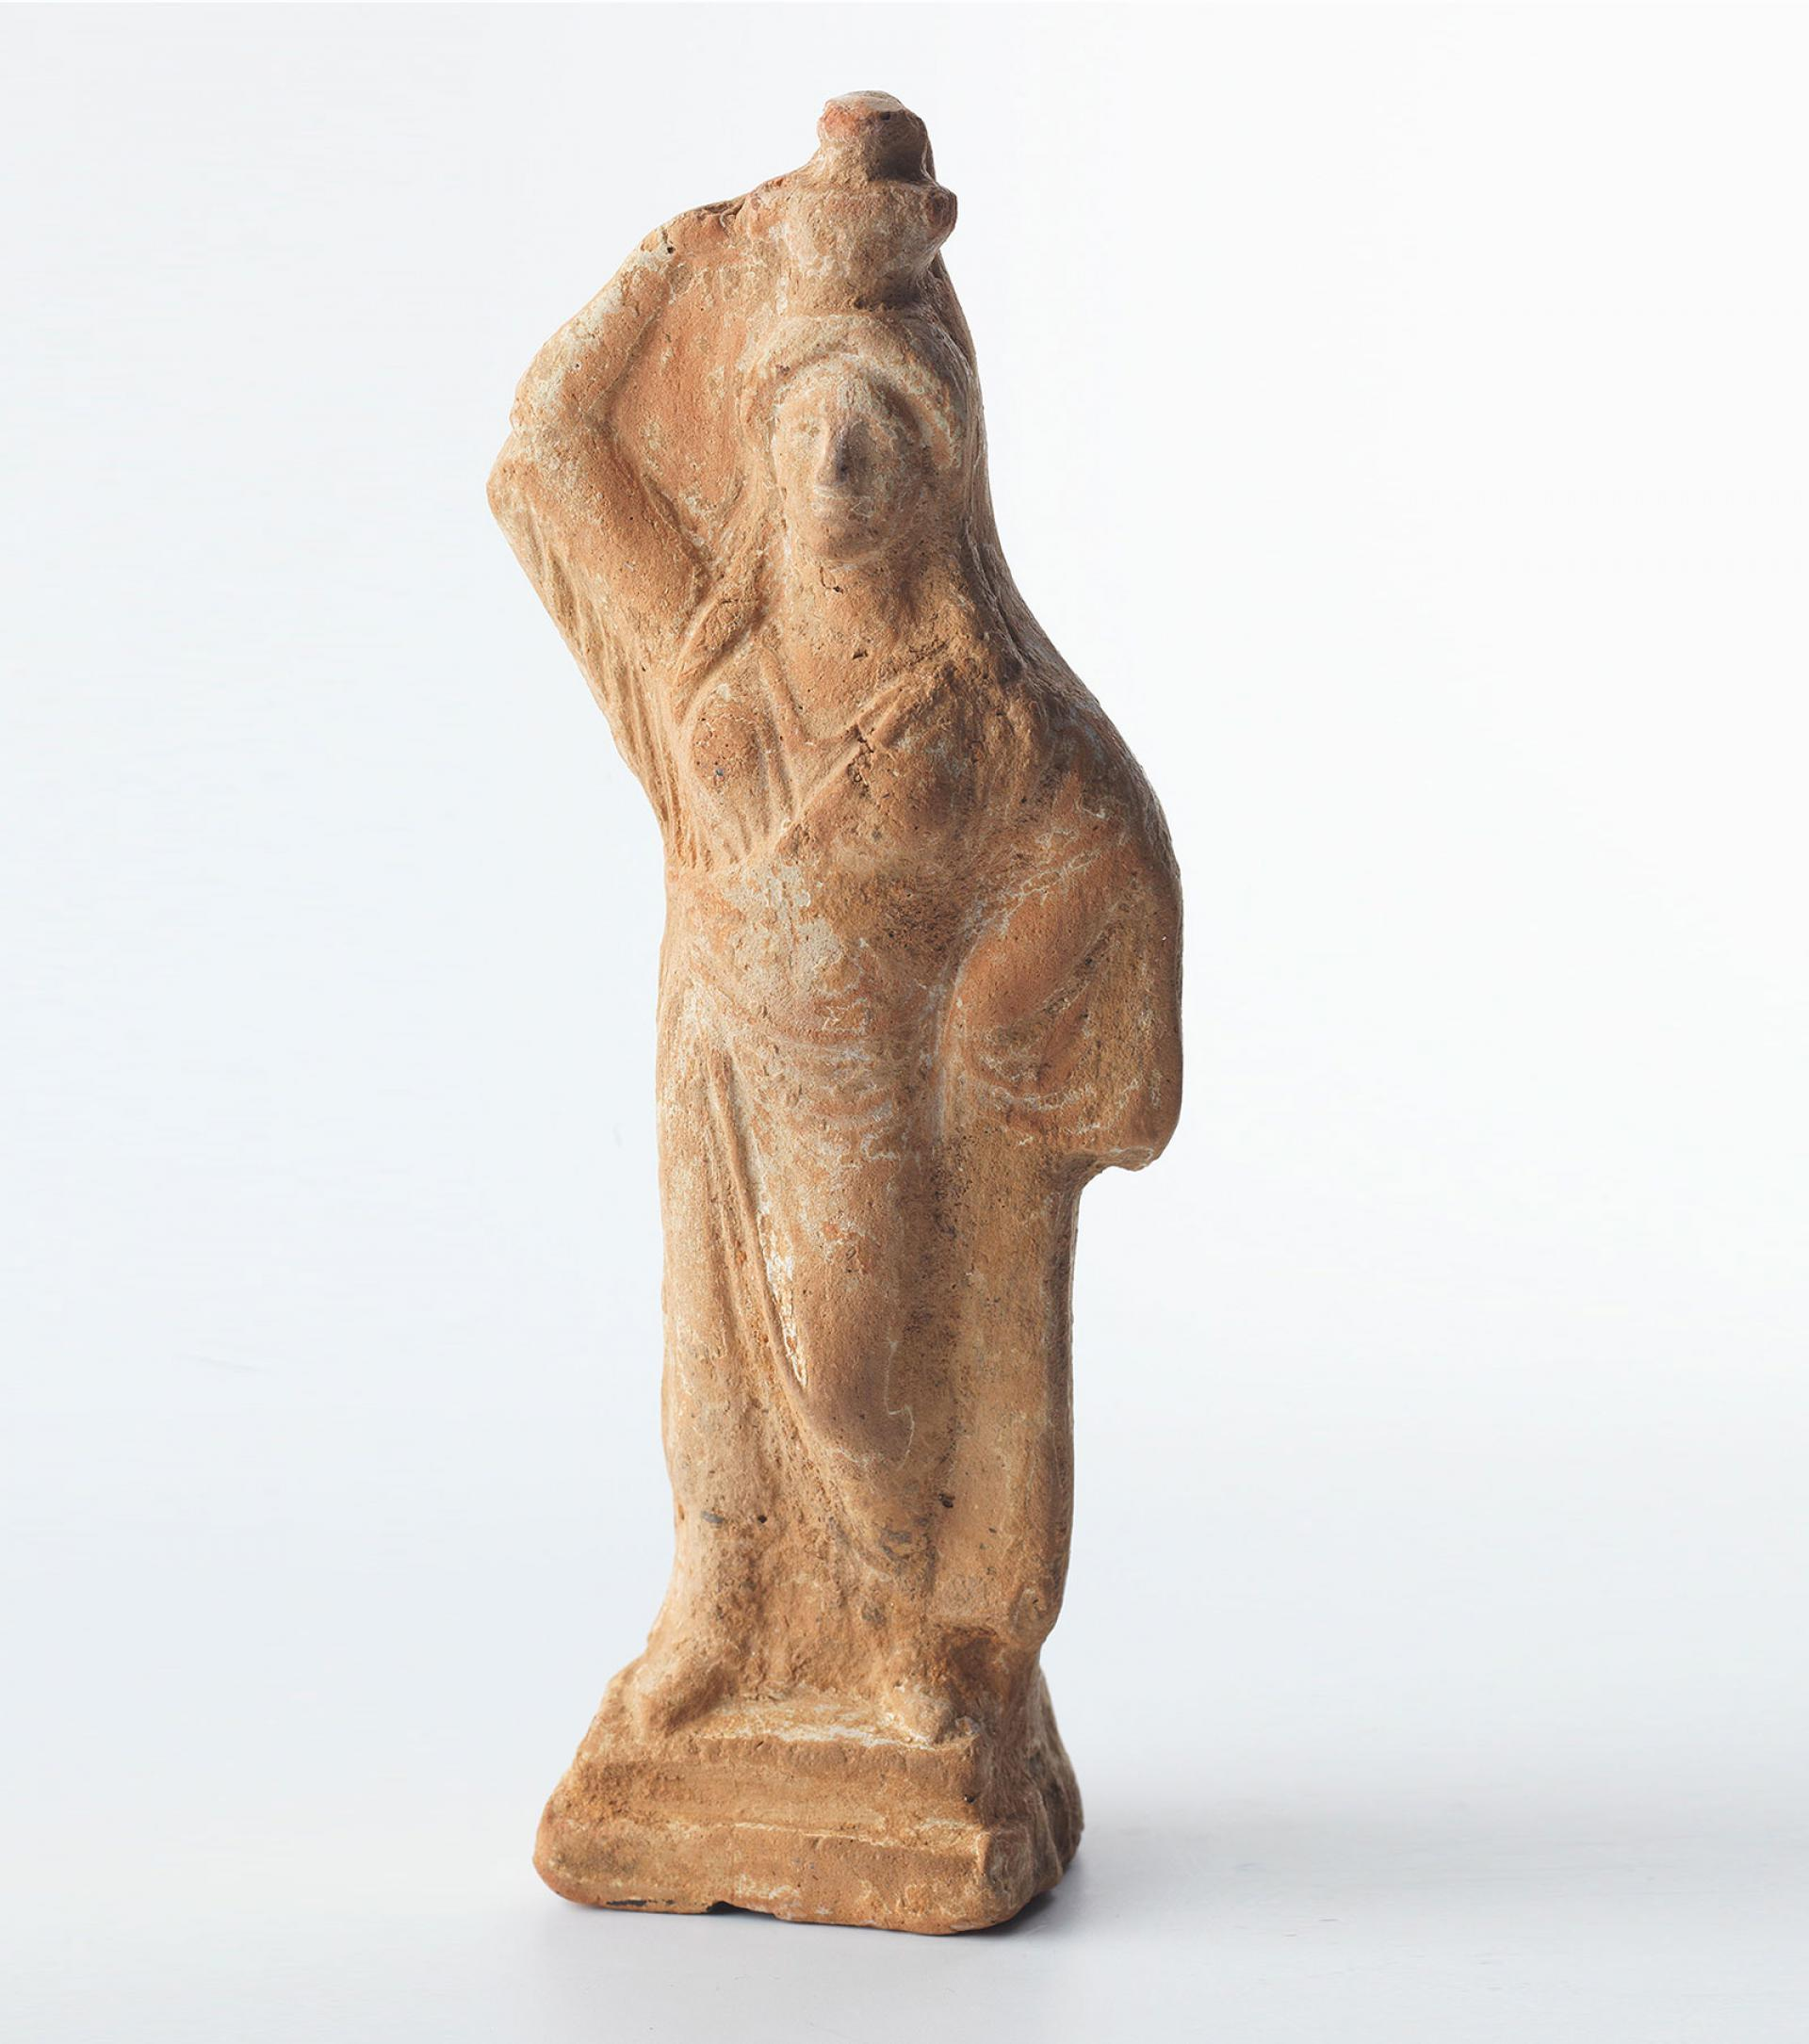 SHM 7274 - Figurine of a standing womanTerracotta Classical Period5th-4th century BC